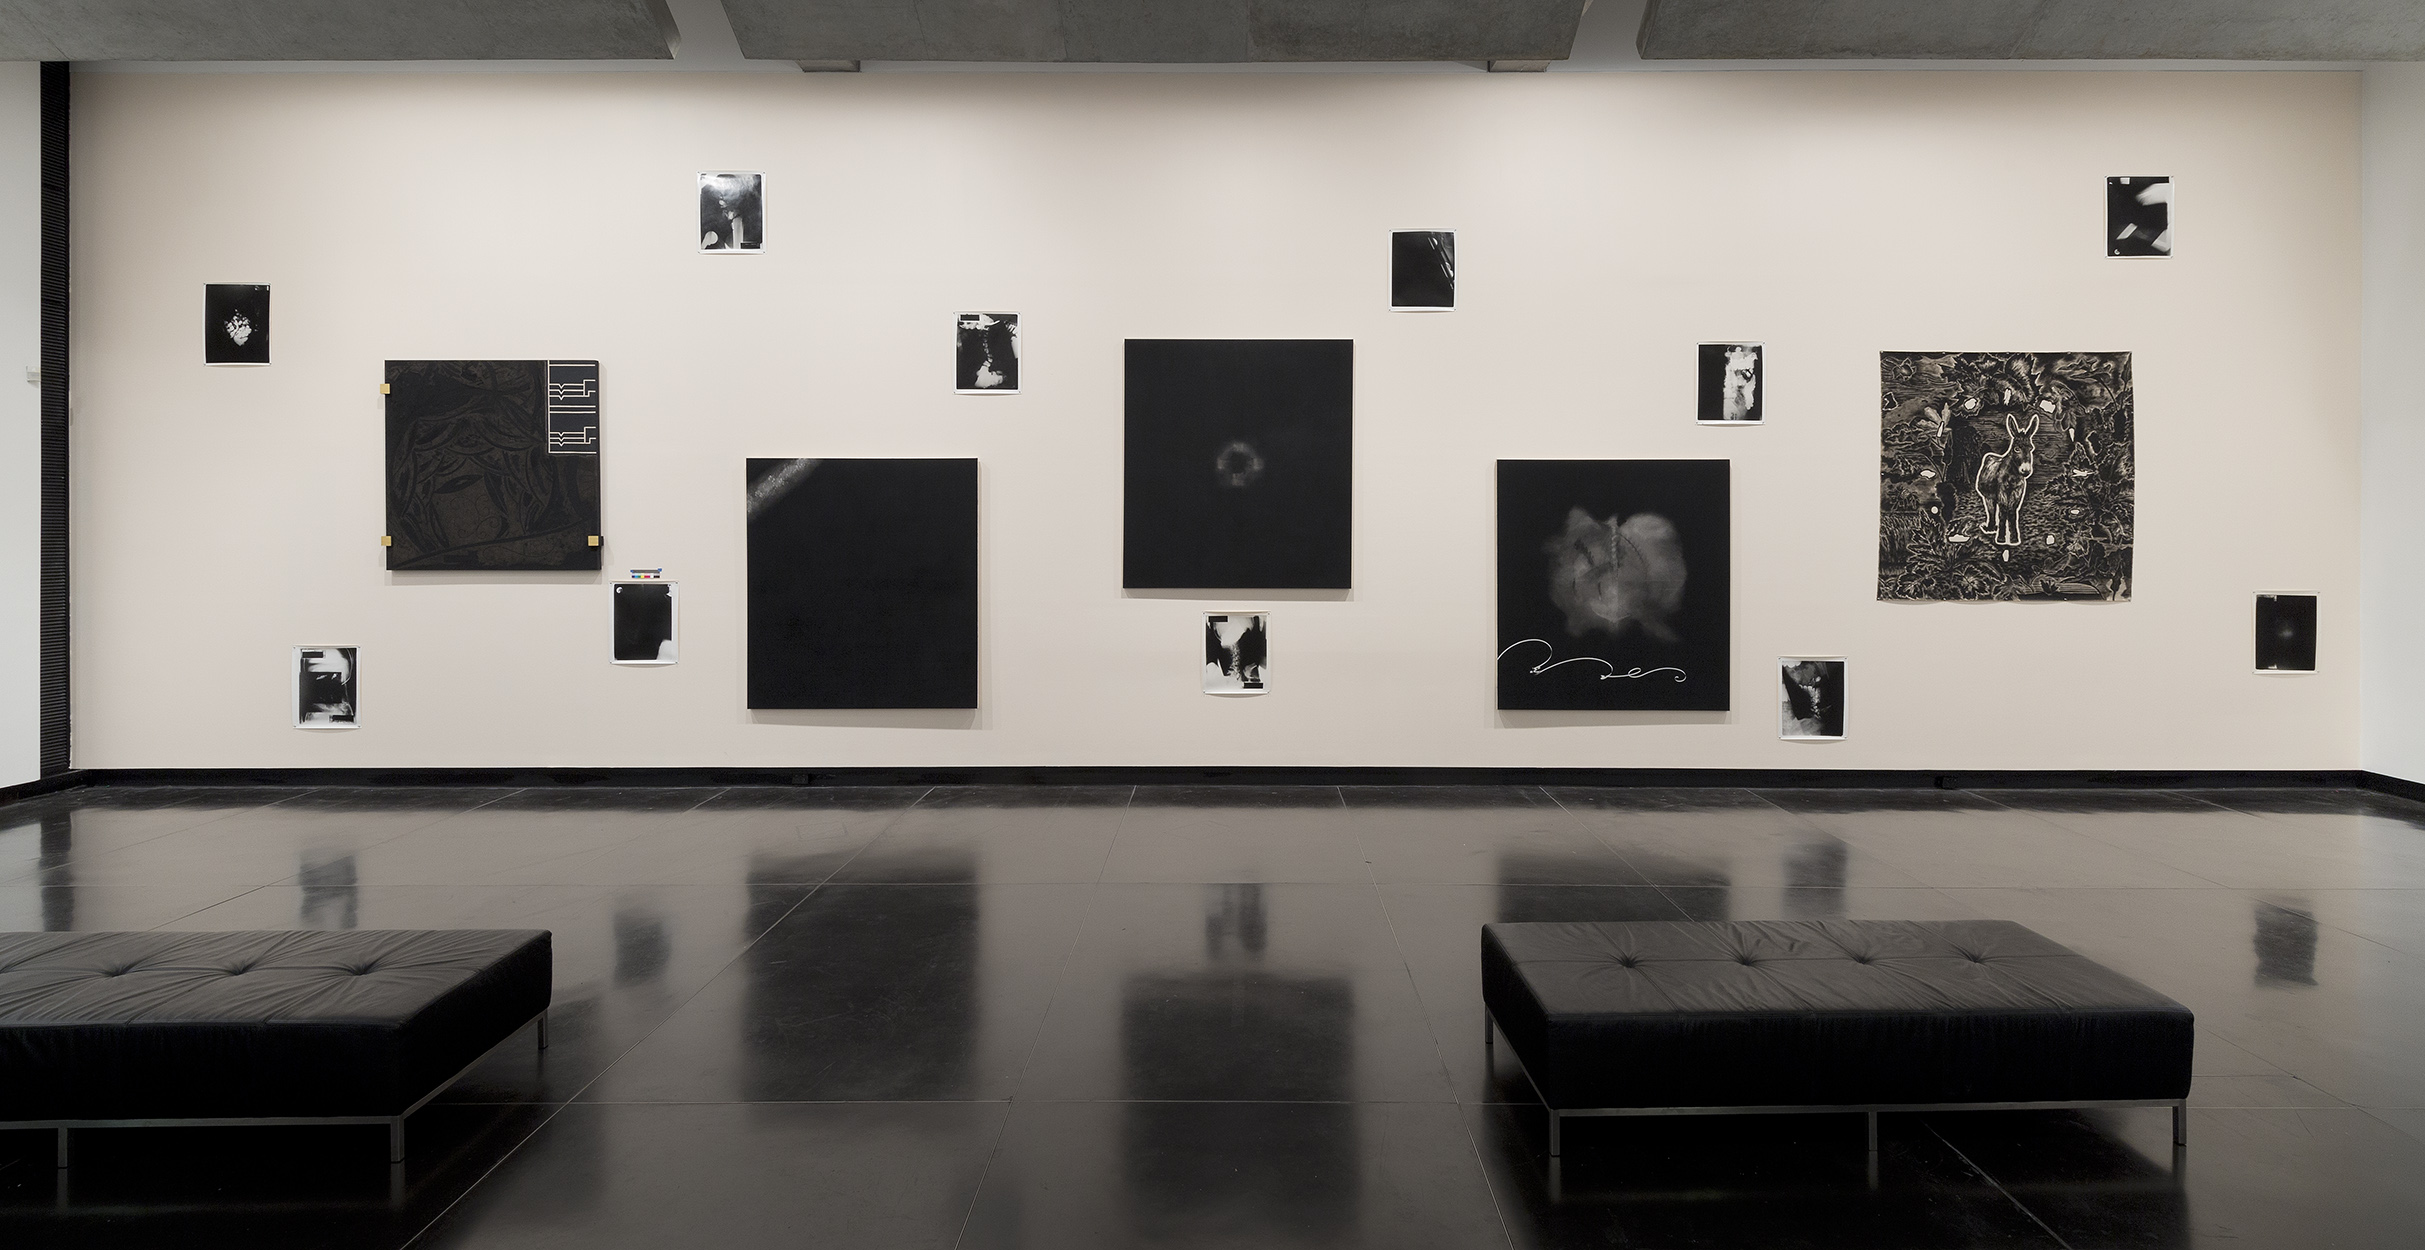 Stieg Persson: Polyphonic , exhibition installation view, Ian Potter Museum of Art, University of Melbourne, 2018; image courtesy the artist and Anna Schwartz Gallery, Melbourne; photo: Christian Capurro